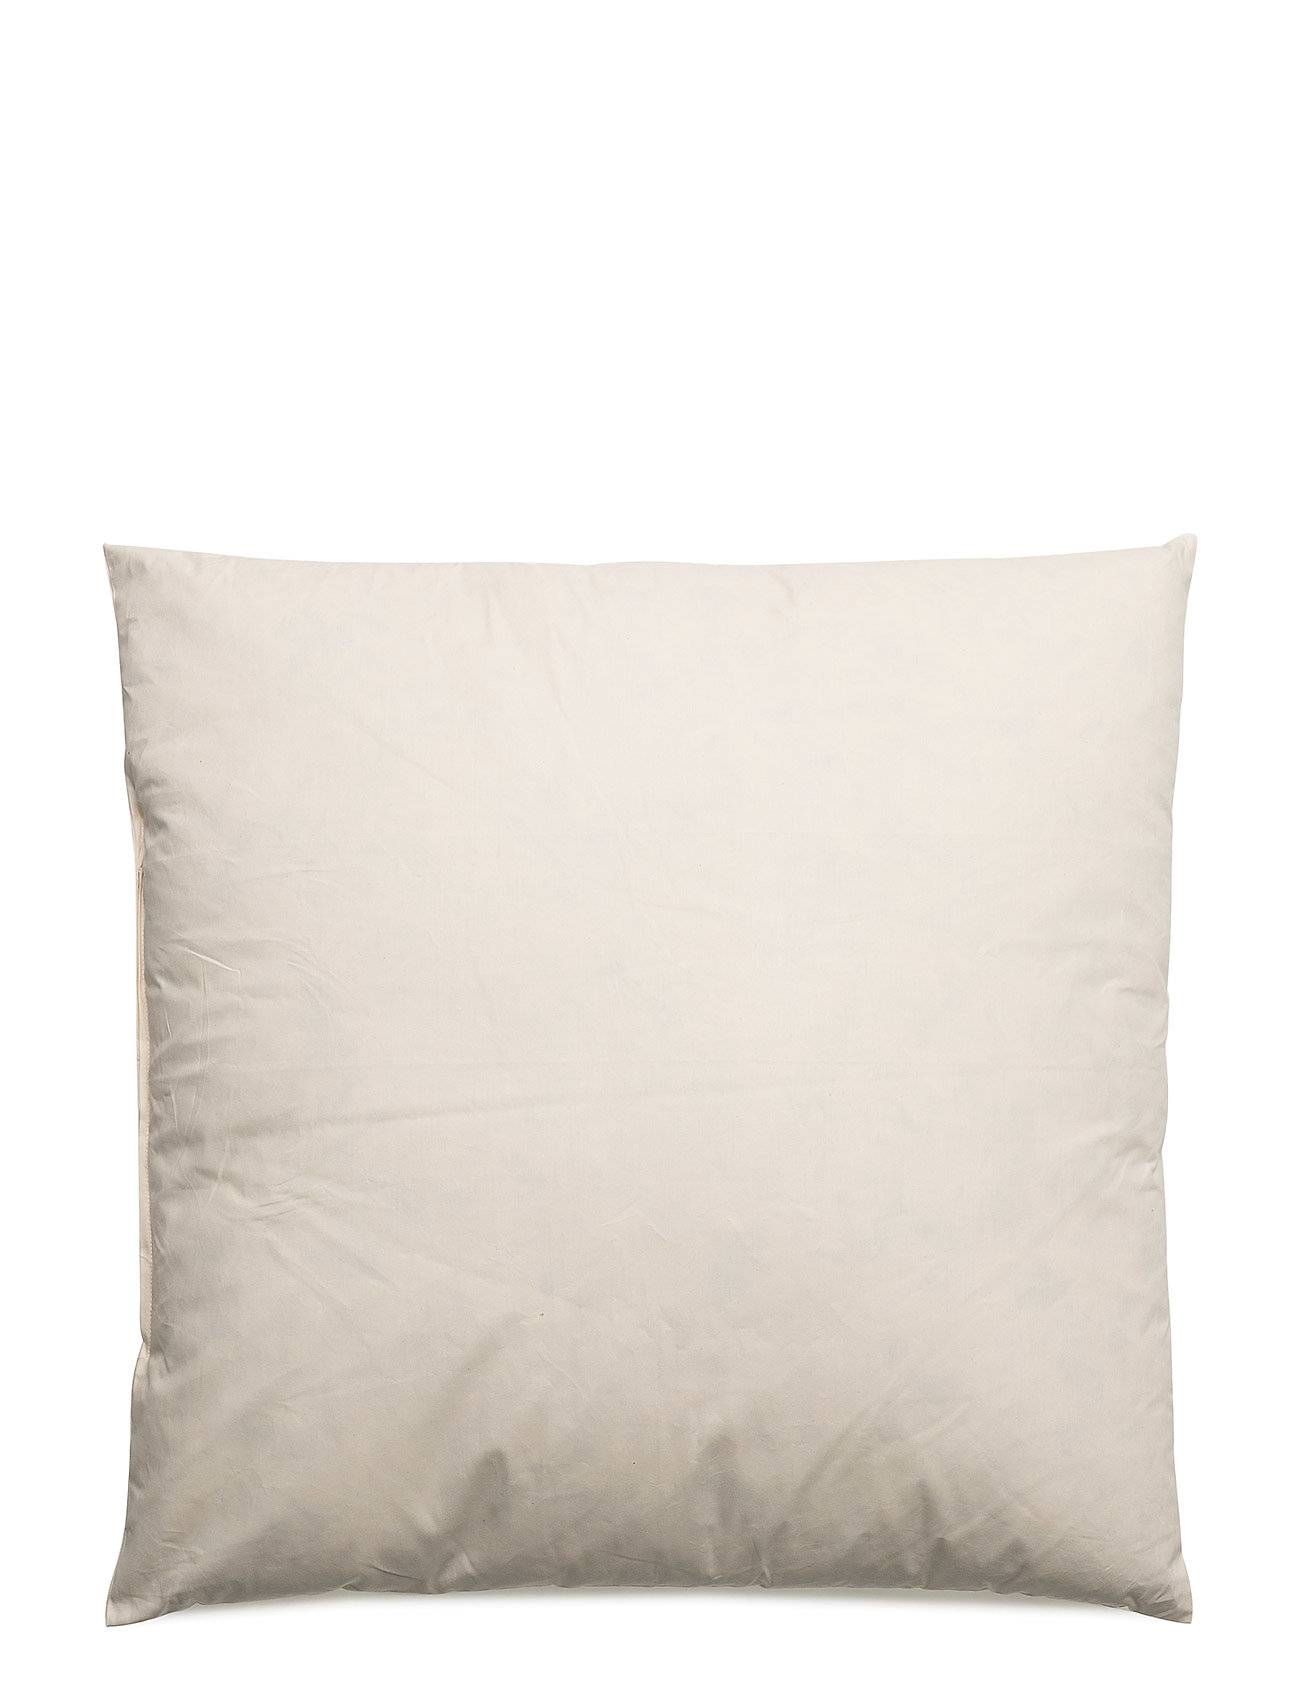 Dirty Linen Insert For Decorative Cushion